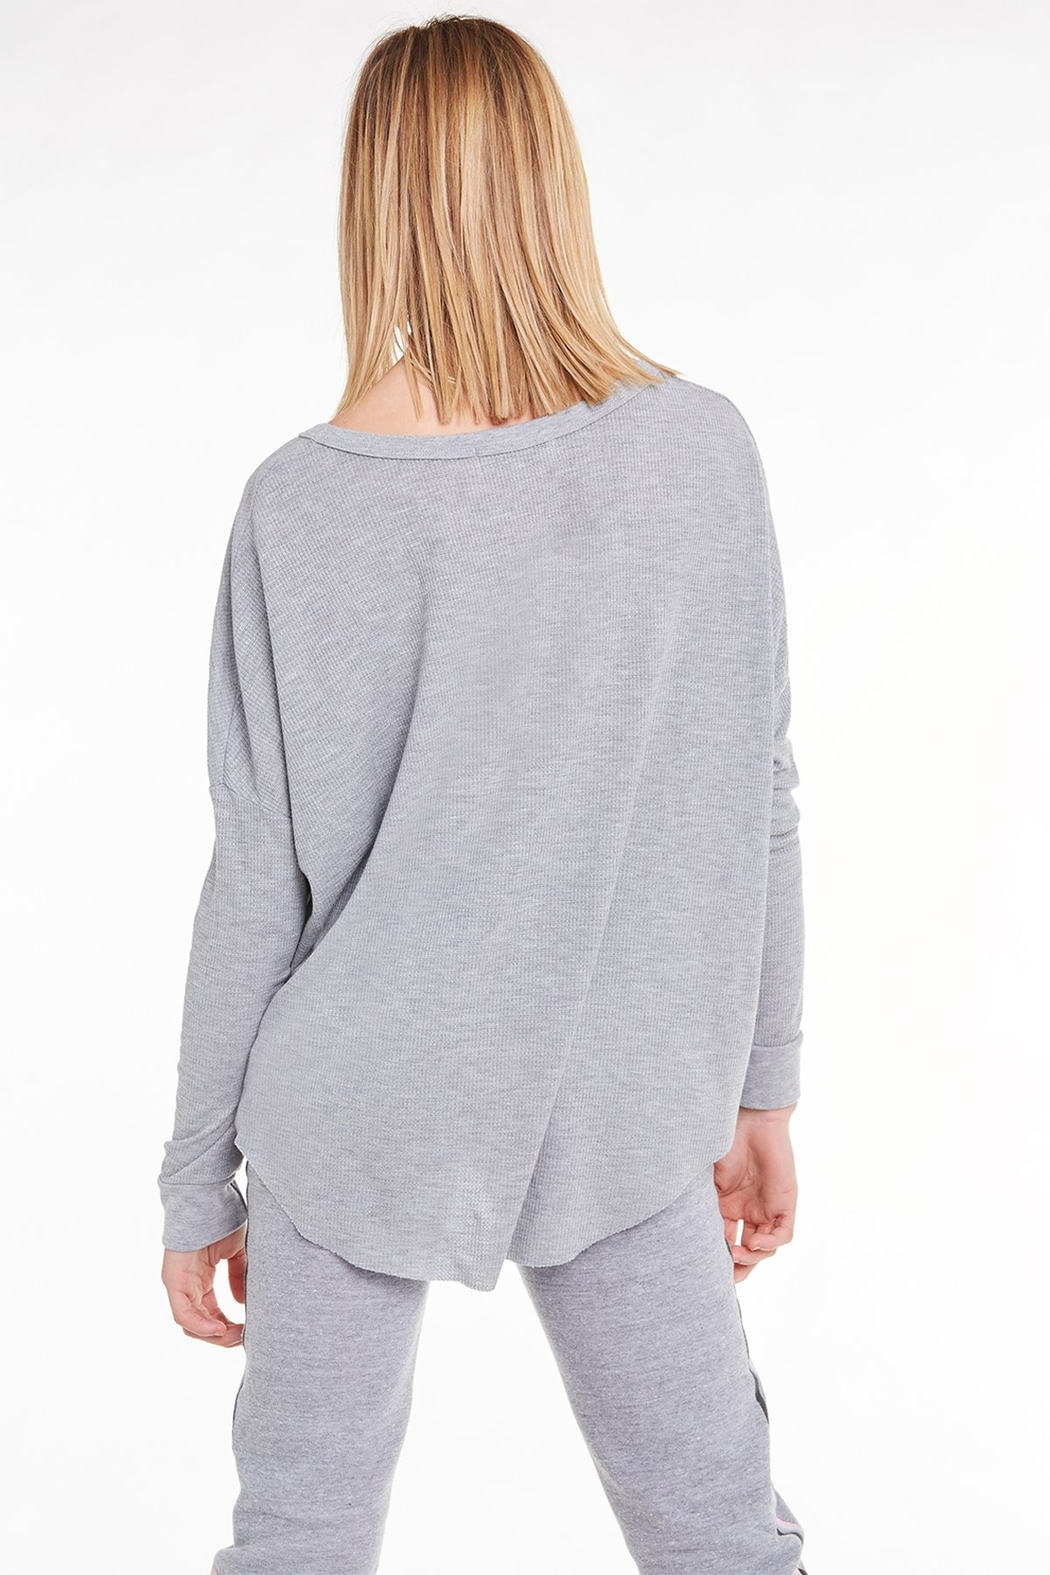 Wildfox Fortune Love Thermal Top - Side Cropped Image